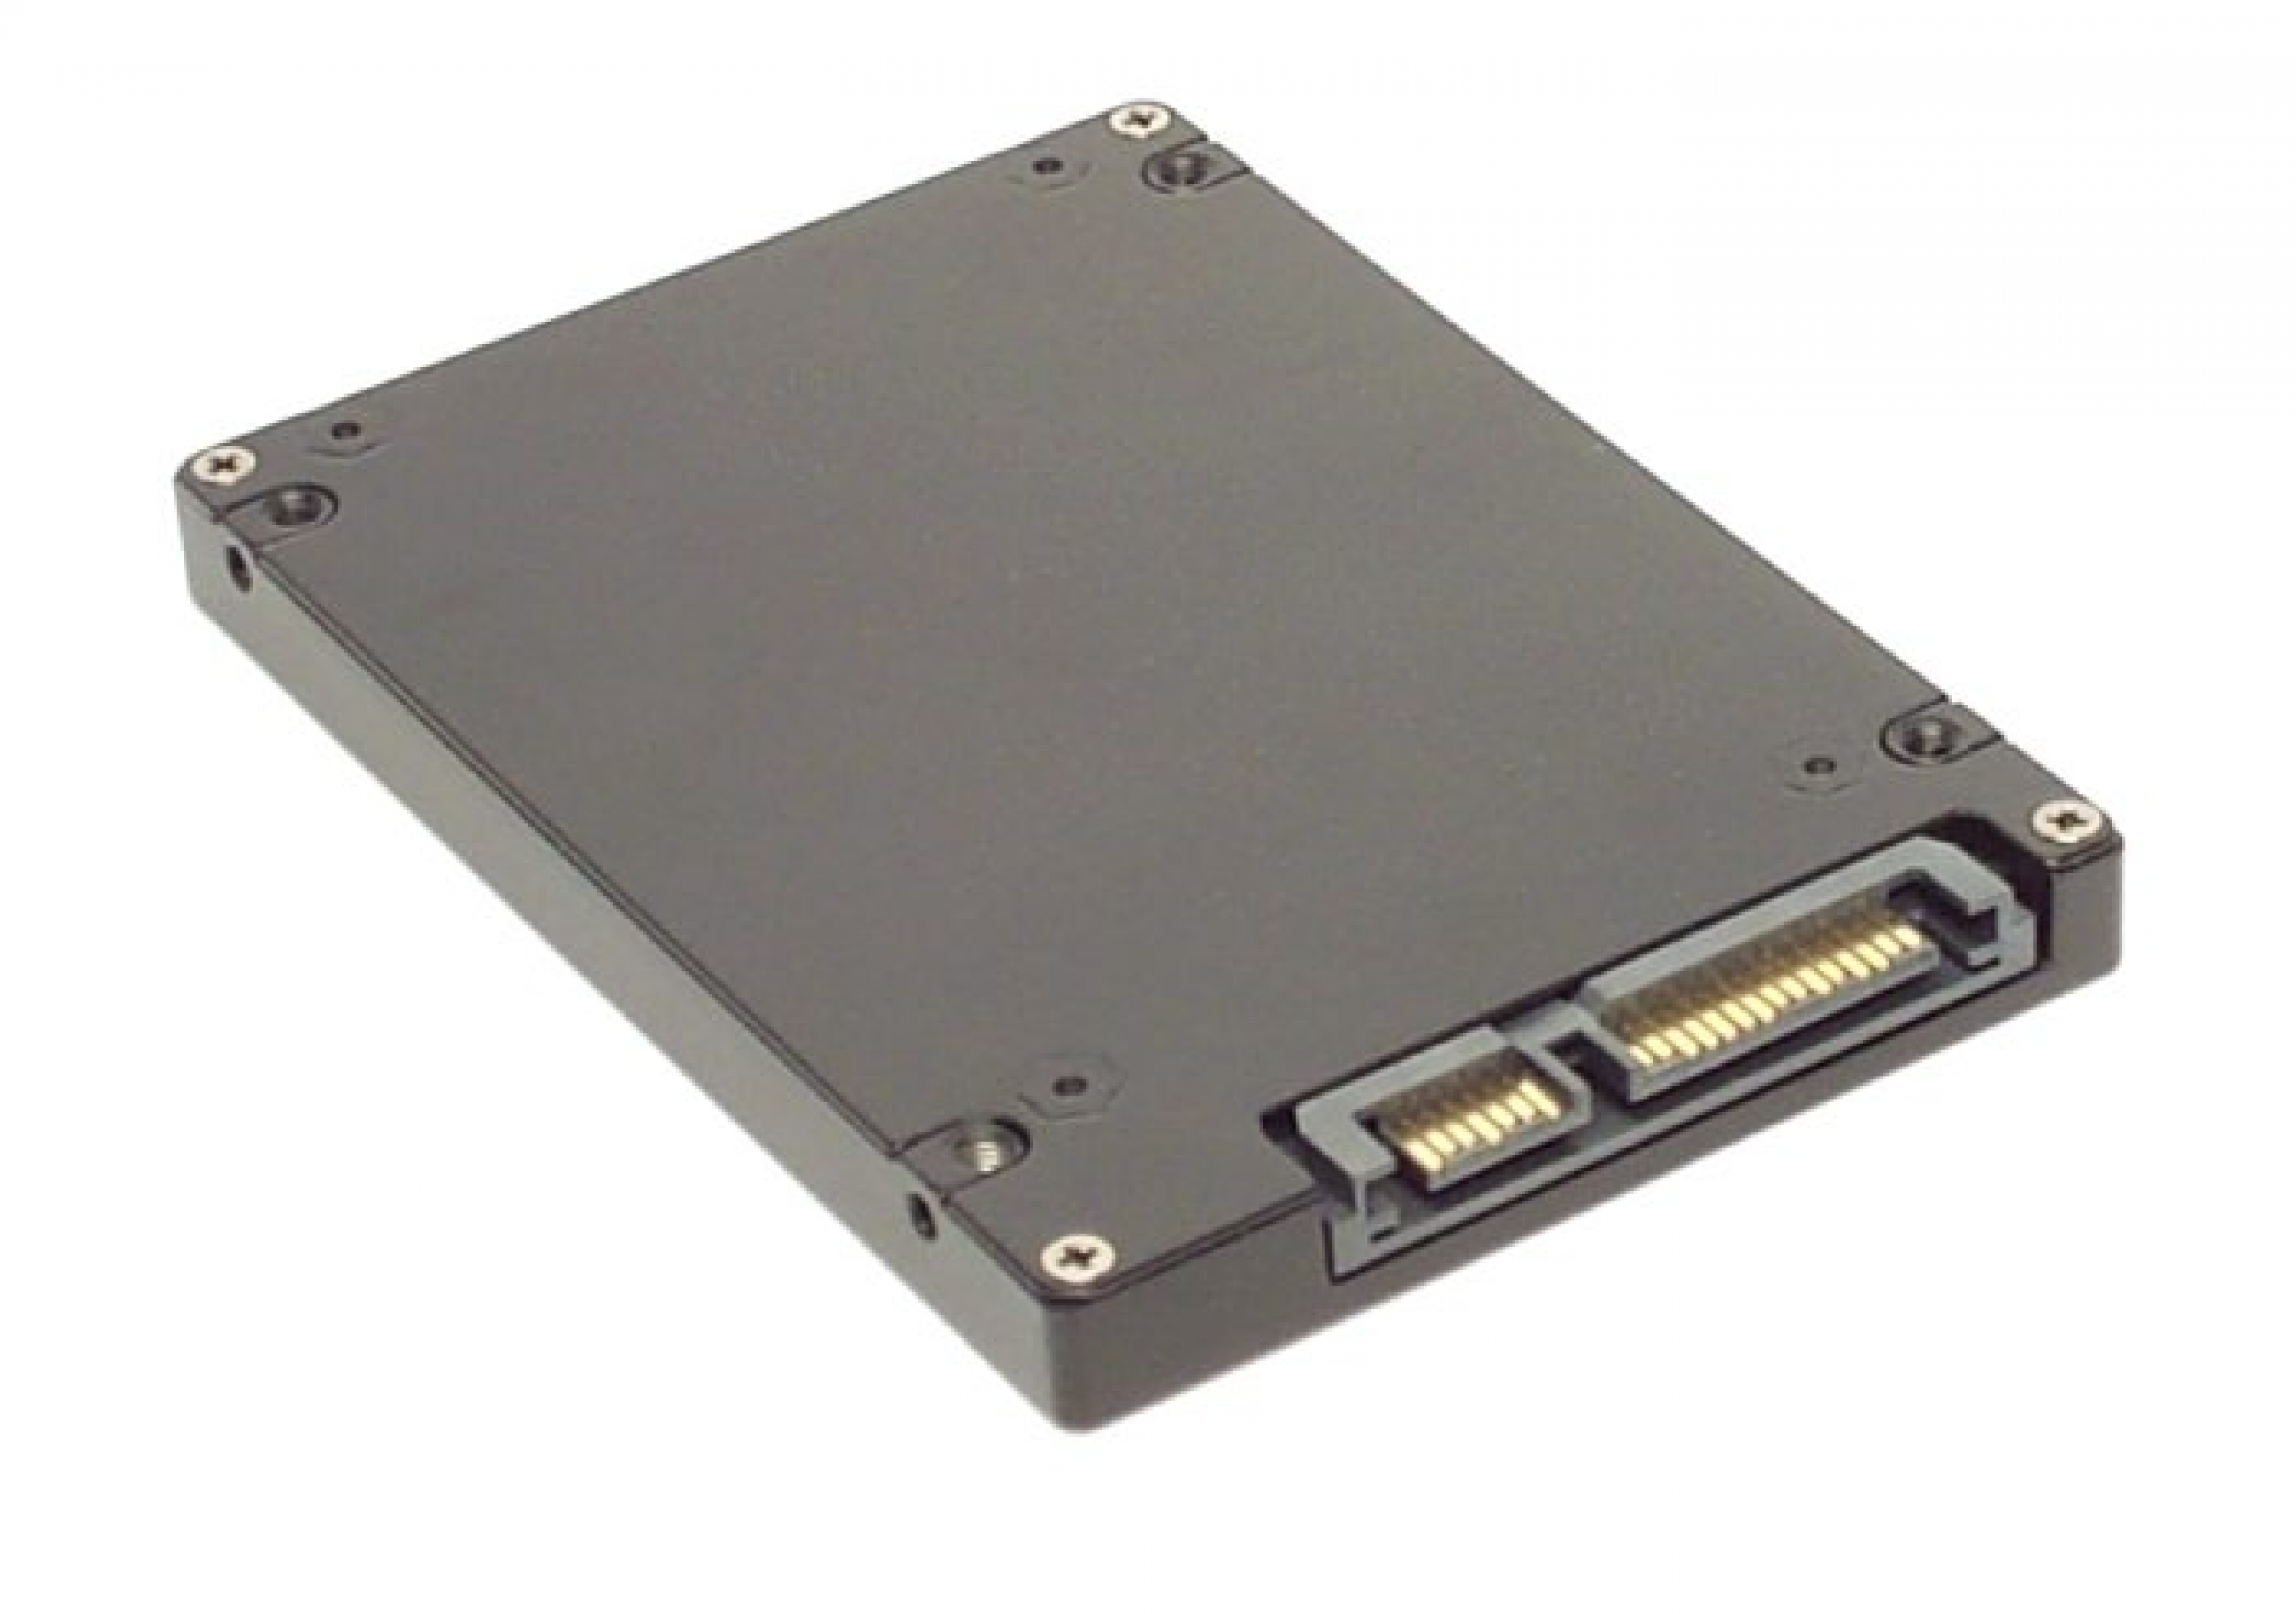 480GB SSD Solid State Drive for Acer Aspire 7741ZG,7745,7745G,7745Z,7750,7750G